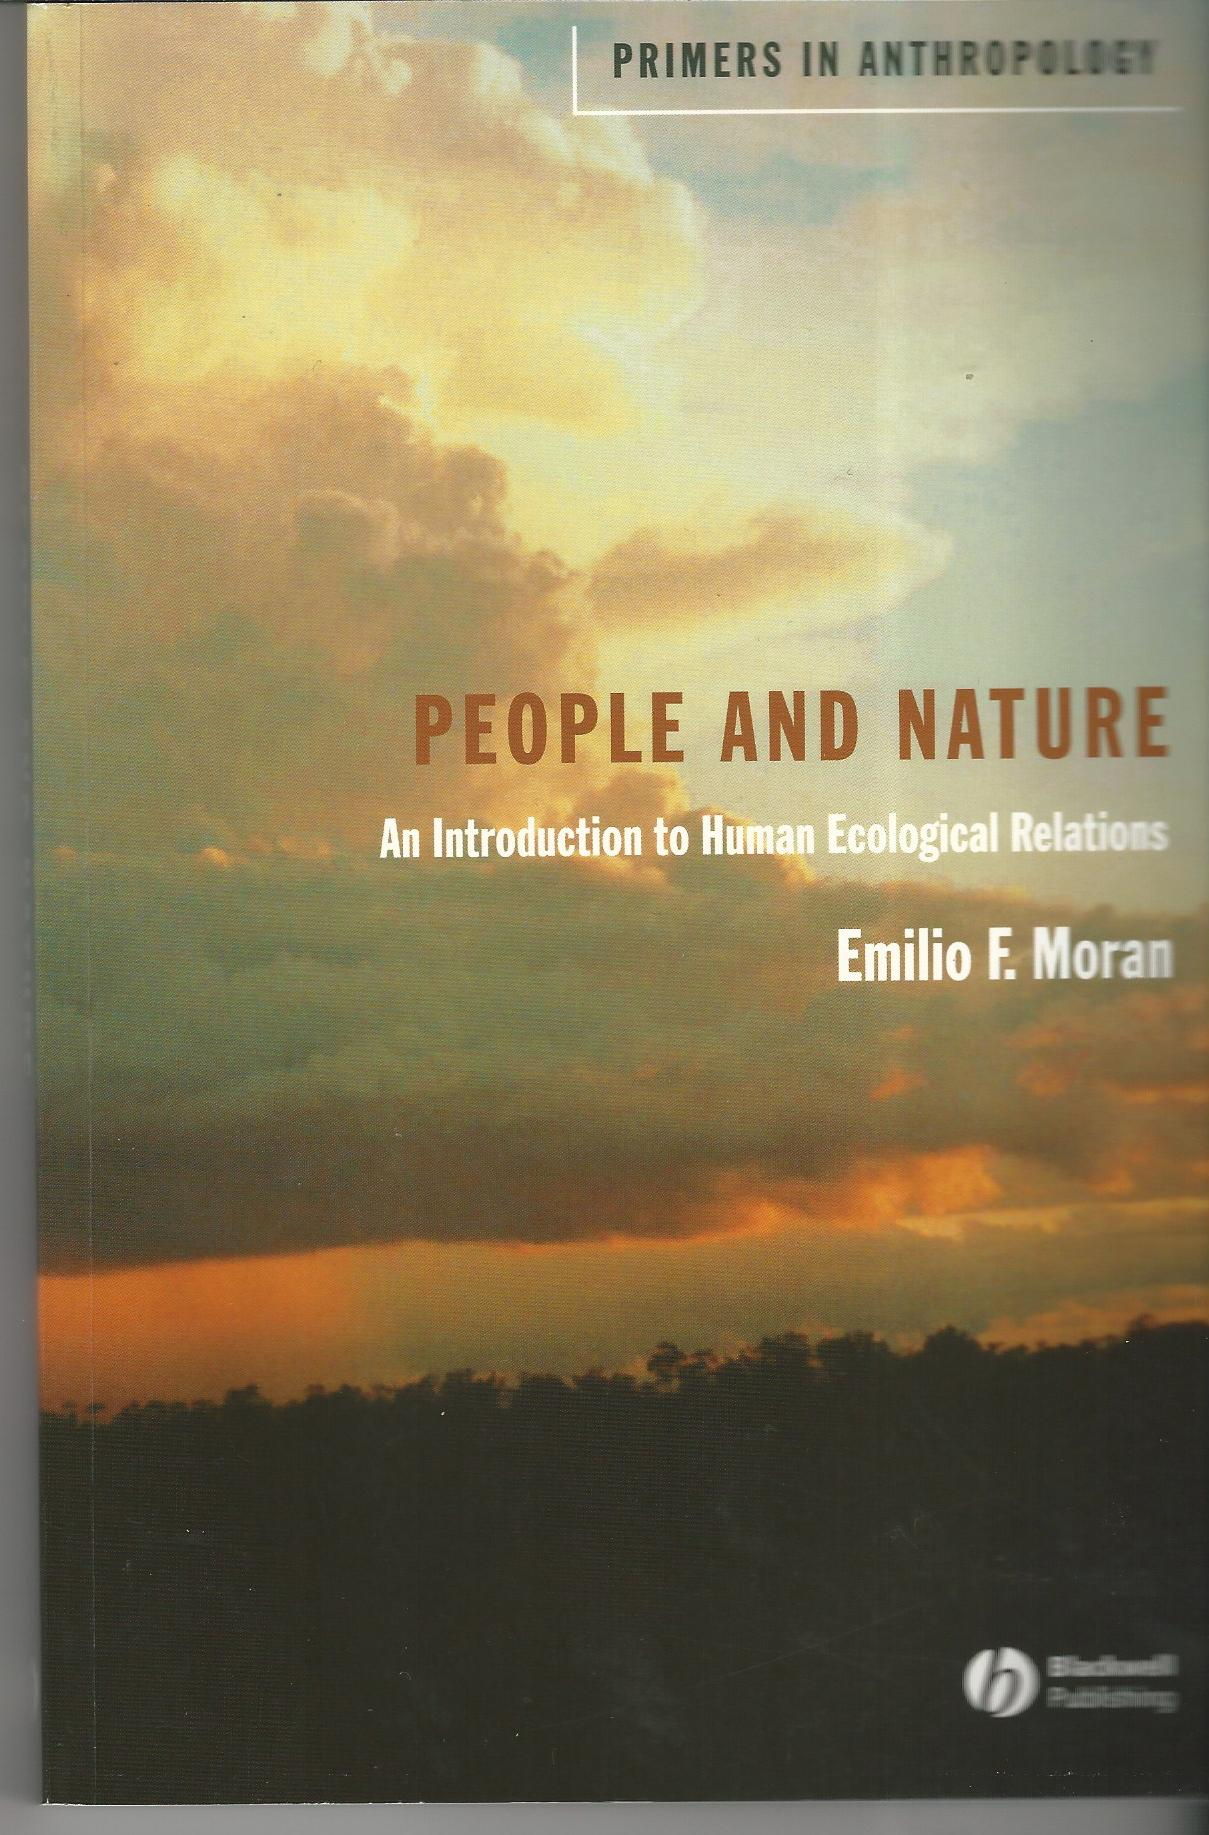 Image for People and Nature: An Introduction to Human Ecological Relations.